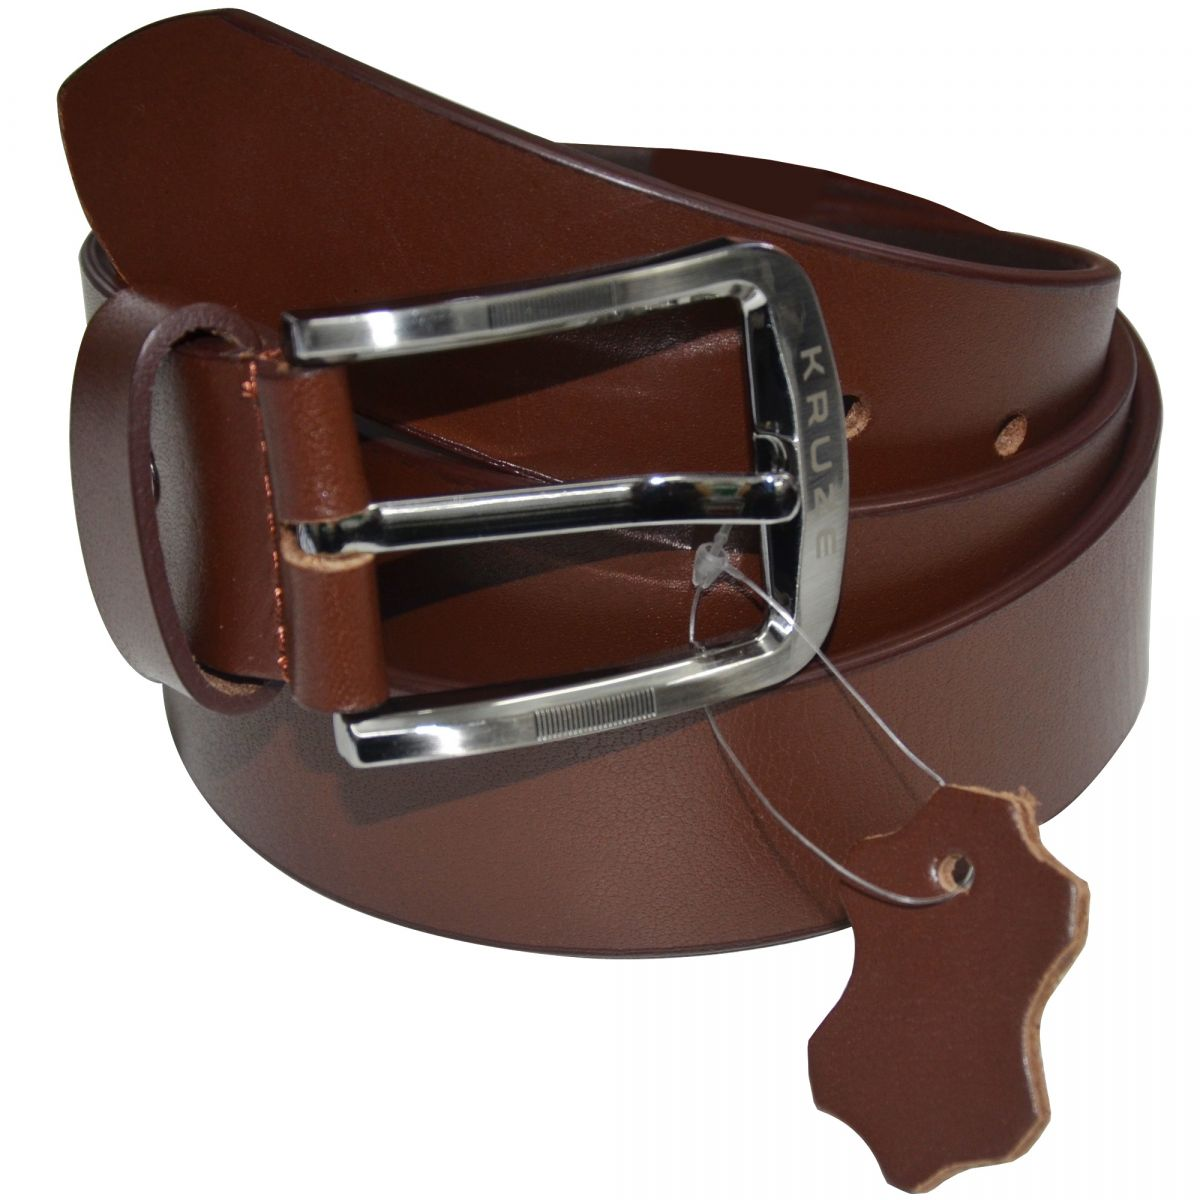 Accessories | Kruze Mens Genuine Leather Belt for Jeans